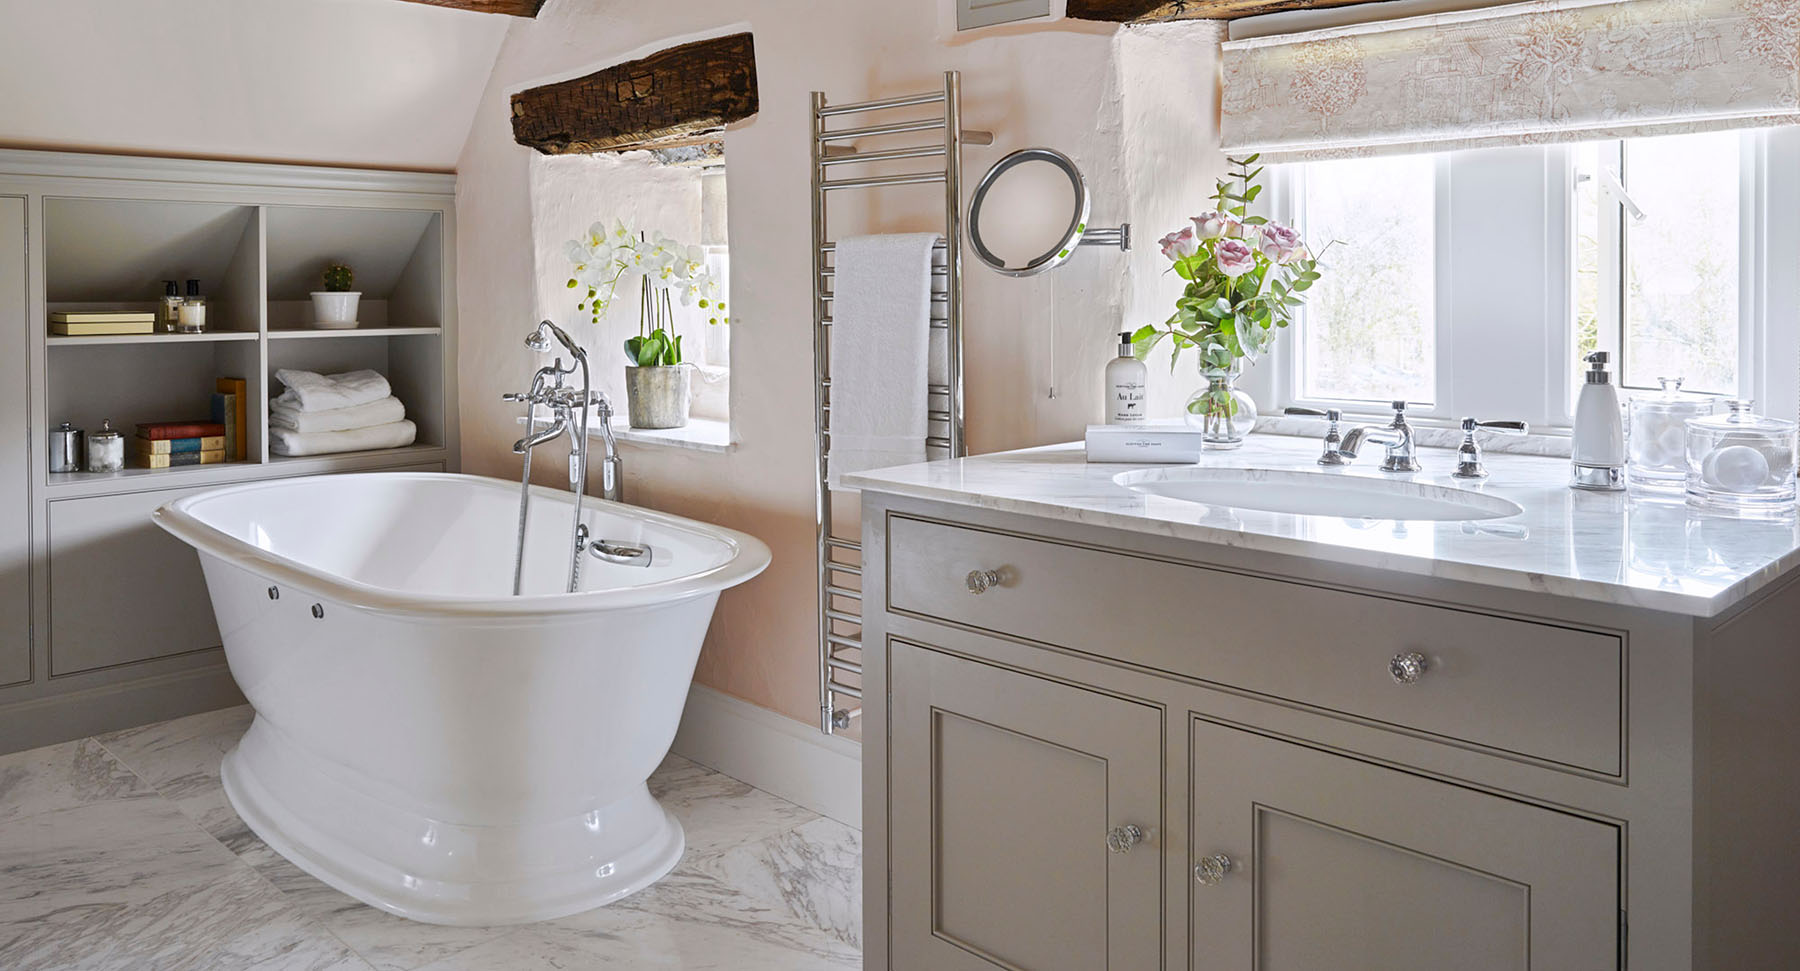 3 Luxury bathroom in period property-UPDATED-GB